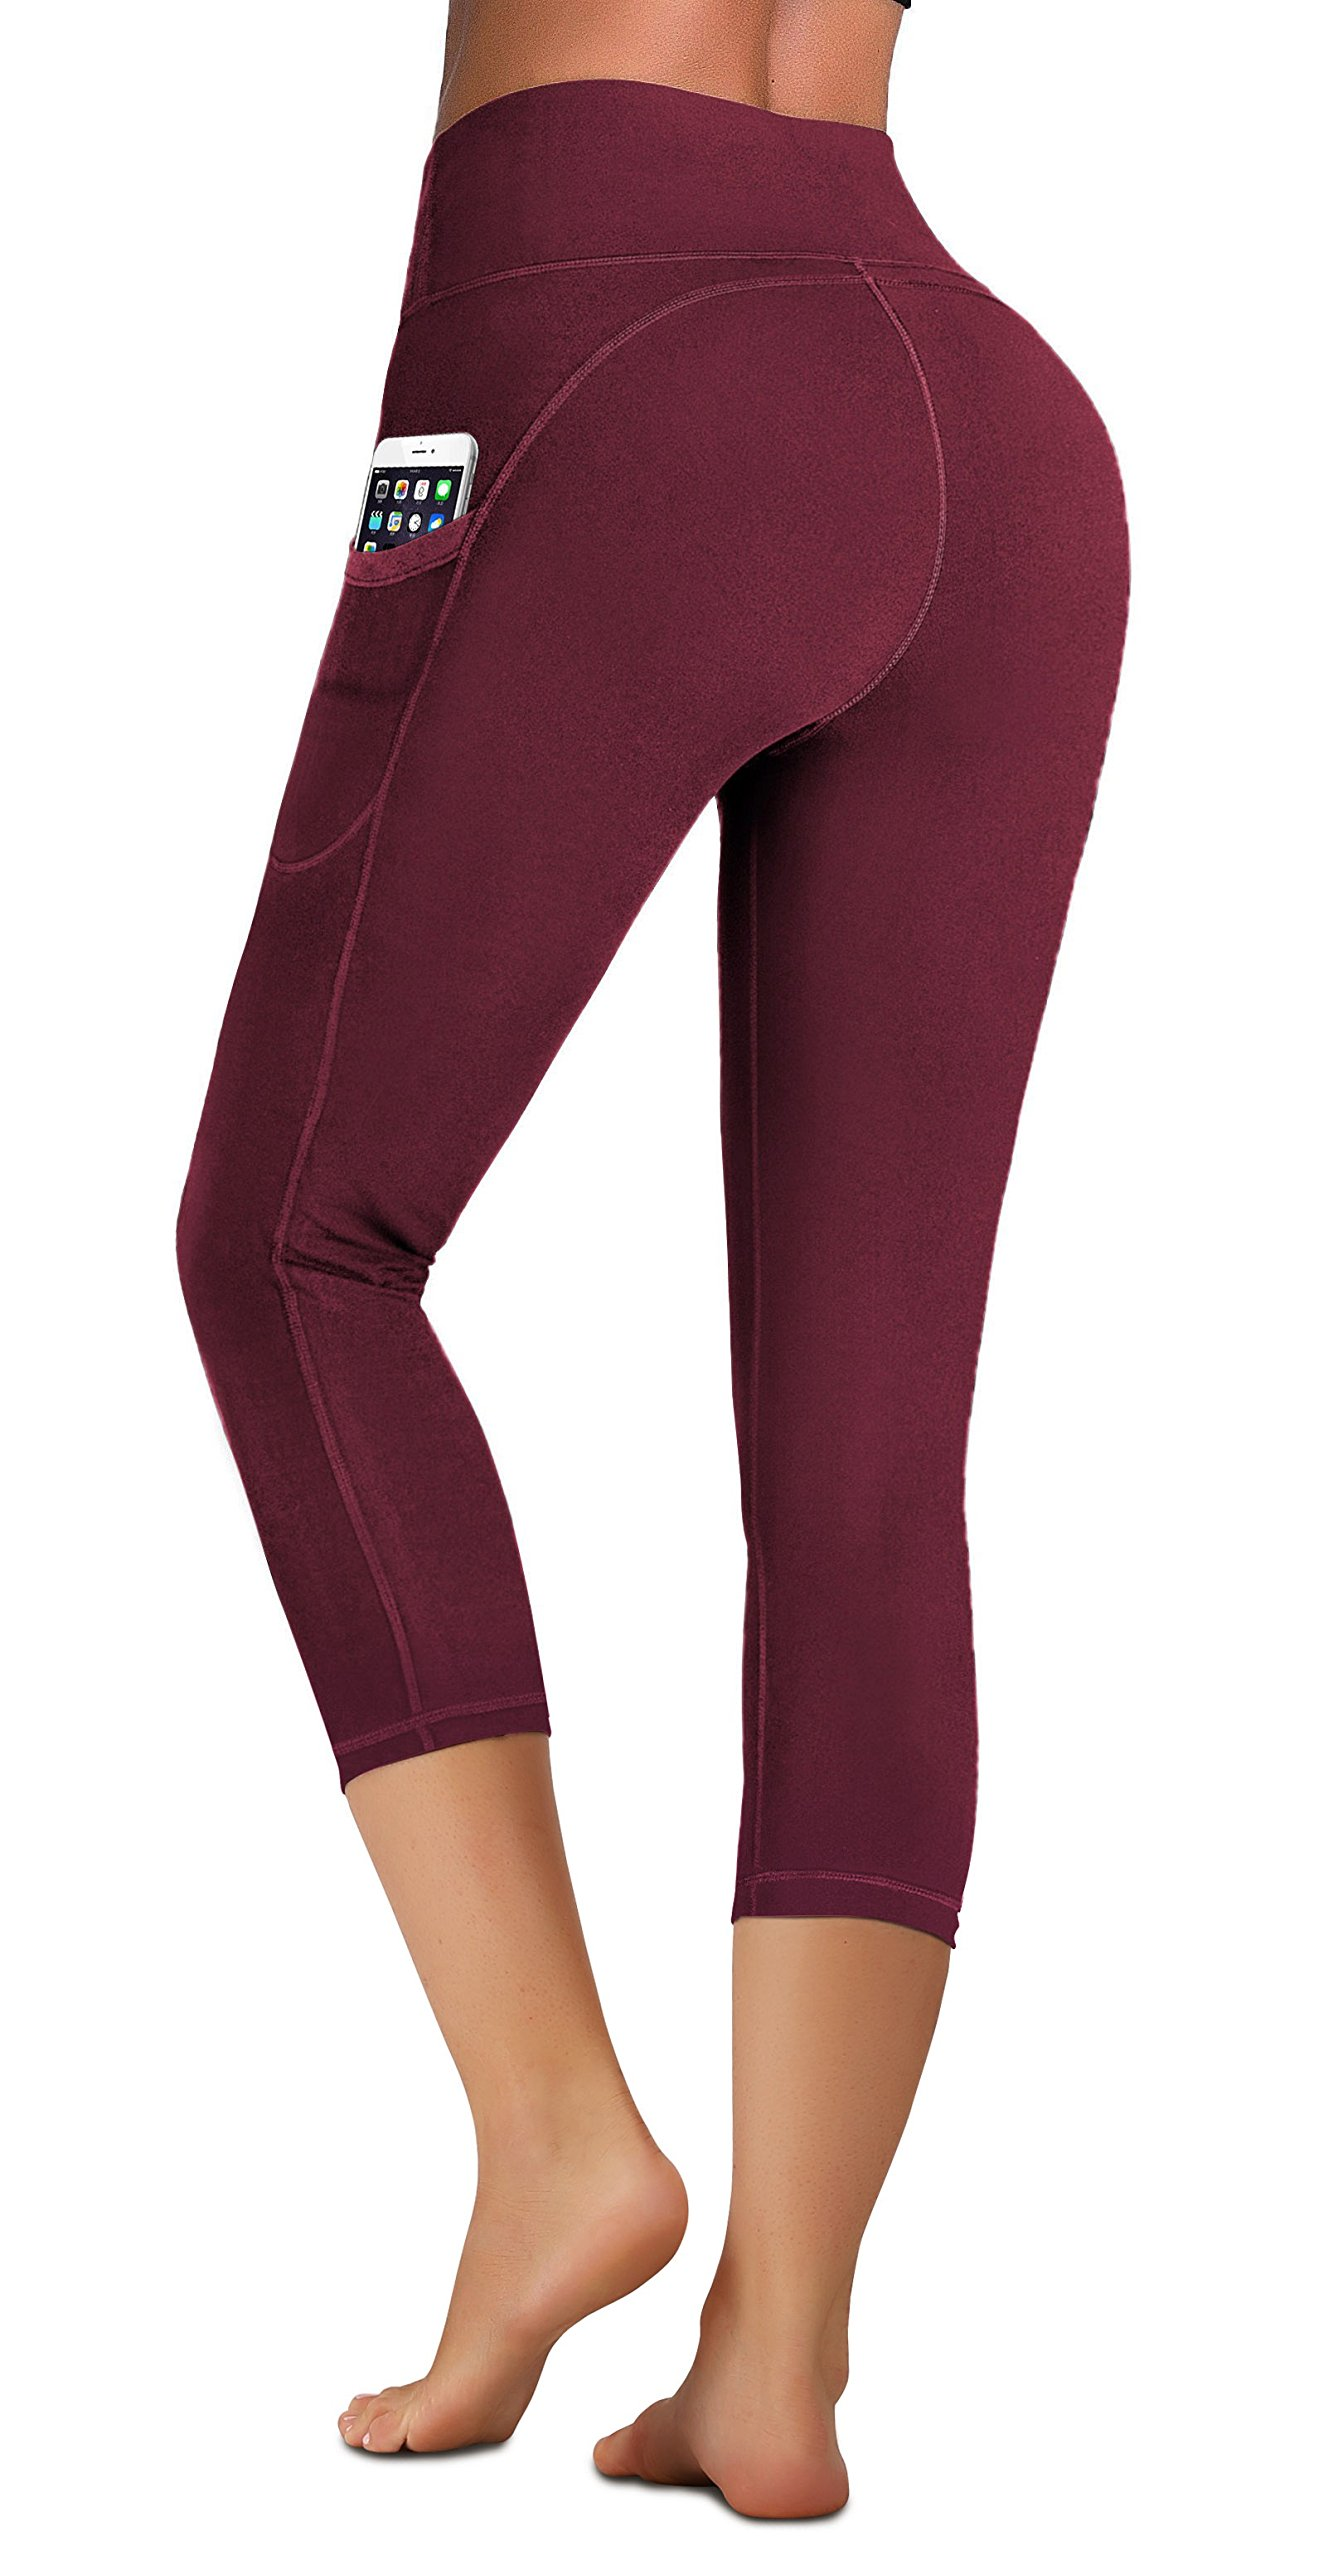 IUGA High Waist Yoga Pants with Pockets, Tummy Control, Workout Pants for Women 4 Way Stretch Yoga Leggings with Pockets (Capri 7881 Maroon, X-Large) by IUGA